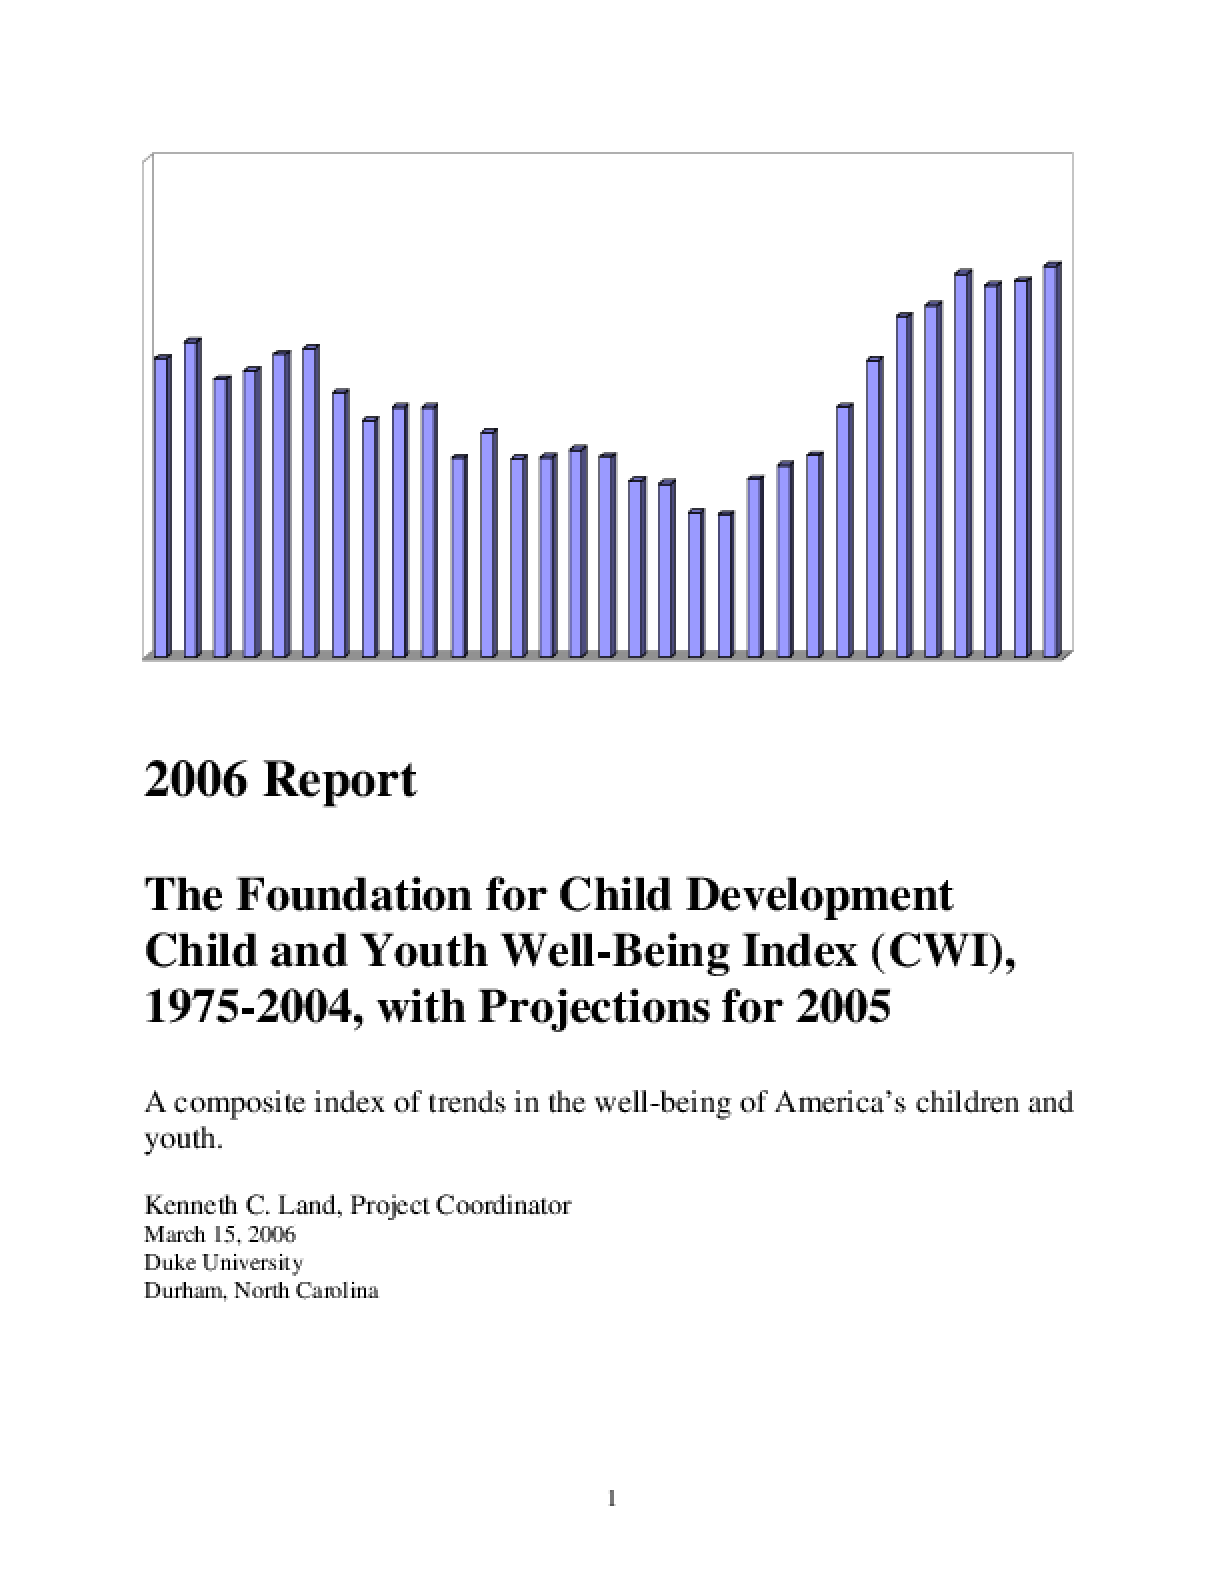 2006 Index of Child Well-Being